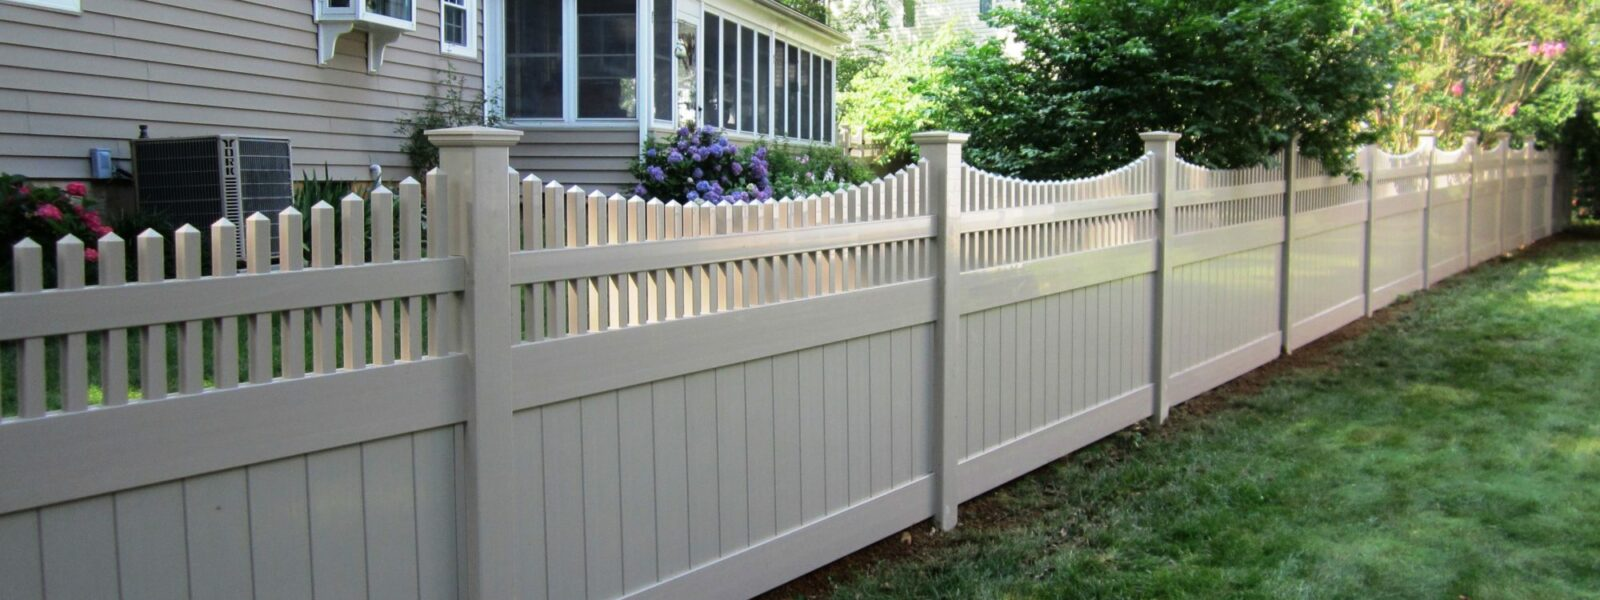 Vinyl privacy fence in back yard